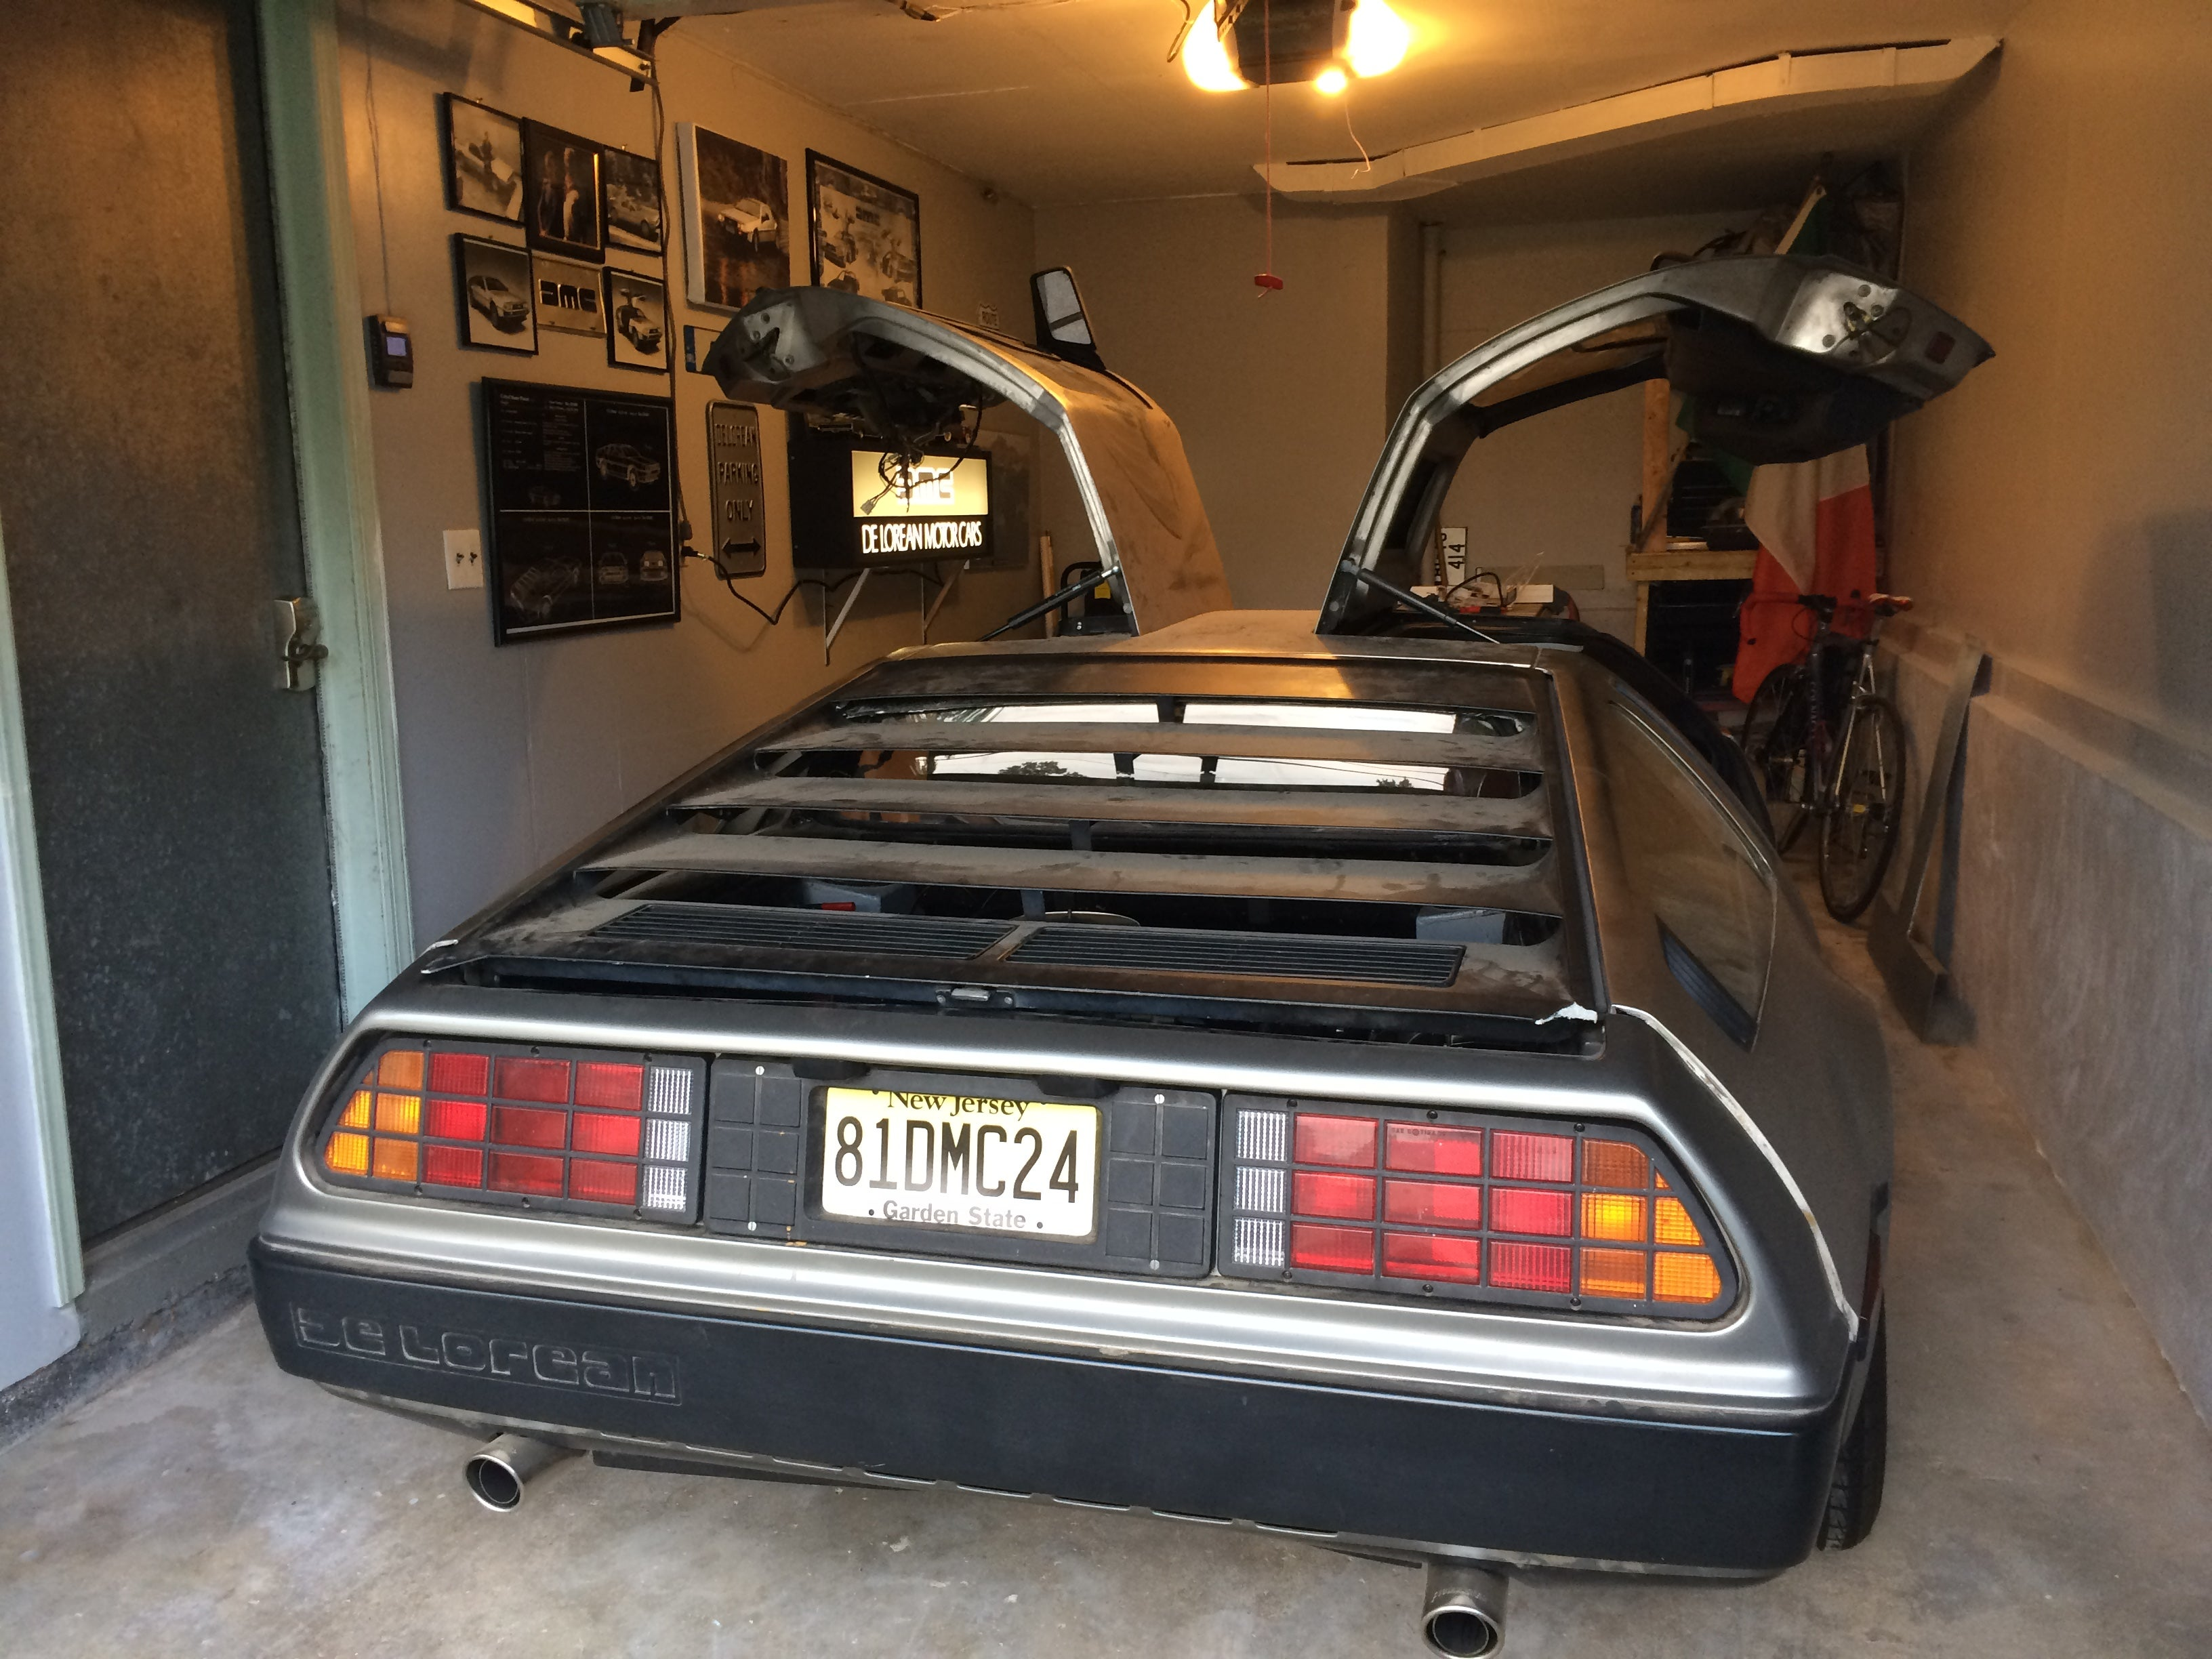 Johns Car In His Delorean Themed Garage Space In New Jersey Photo John Dore